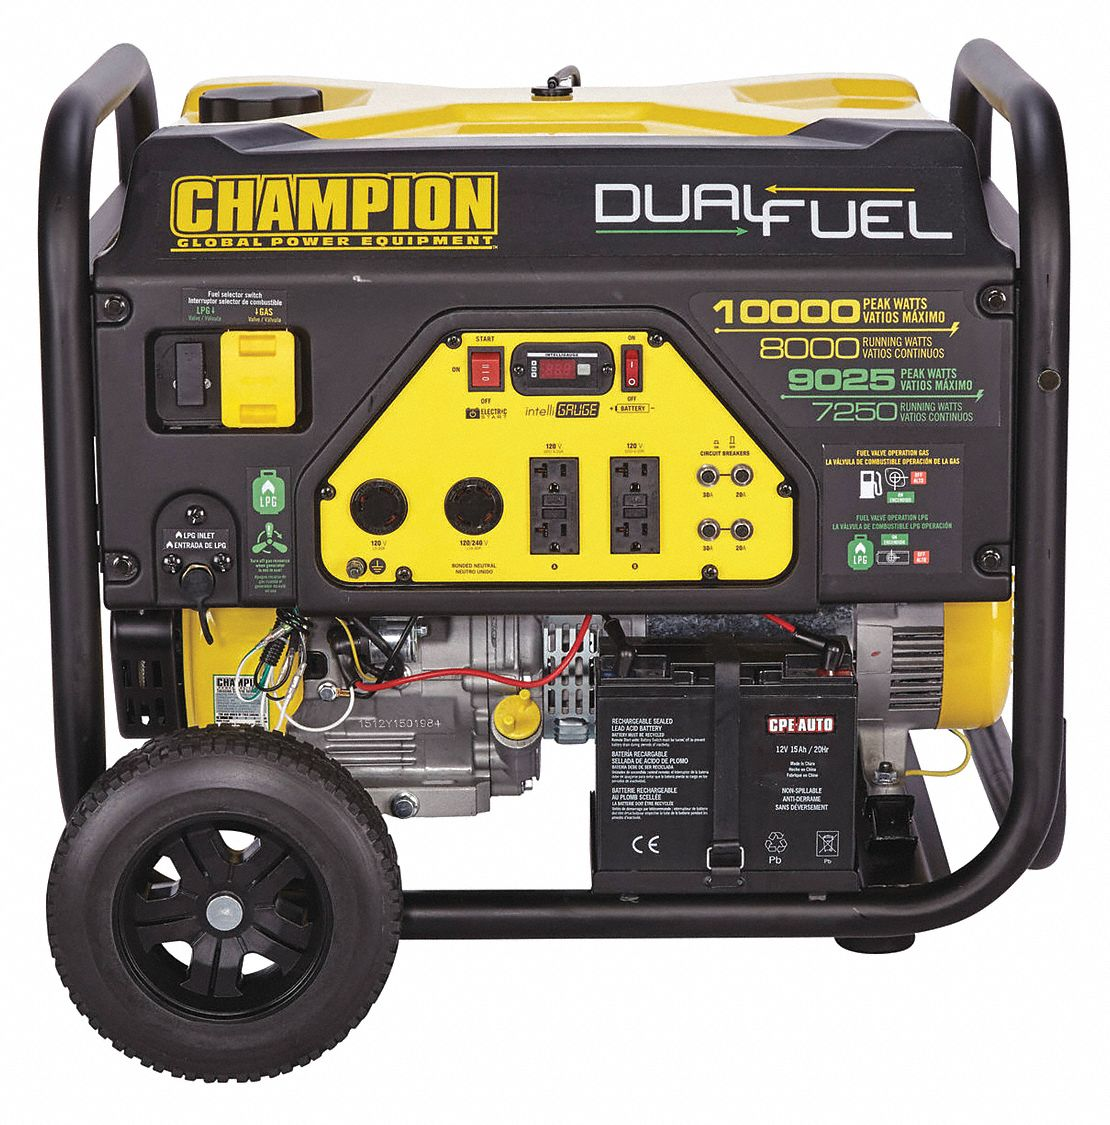 Champion Power Equipment Electrical Power Generators Outdoor Equipment Grainger Industrial Supply